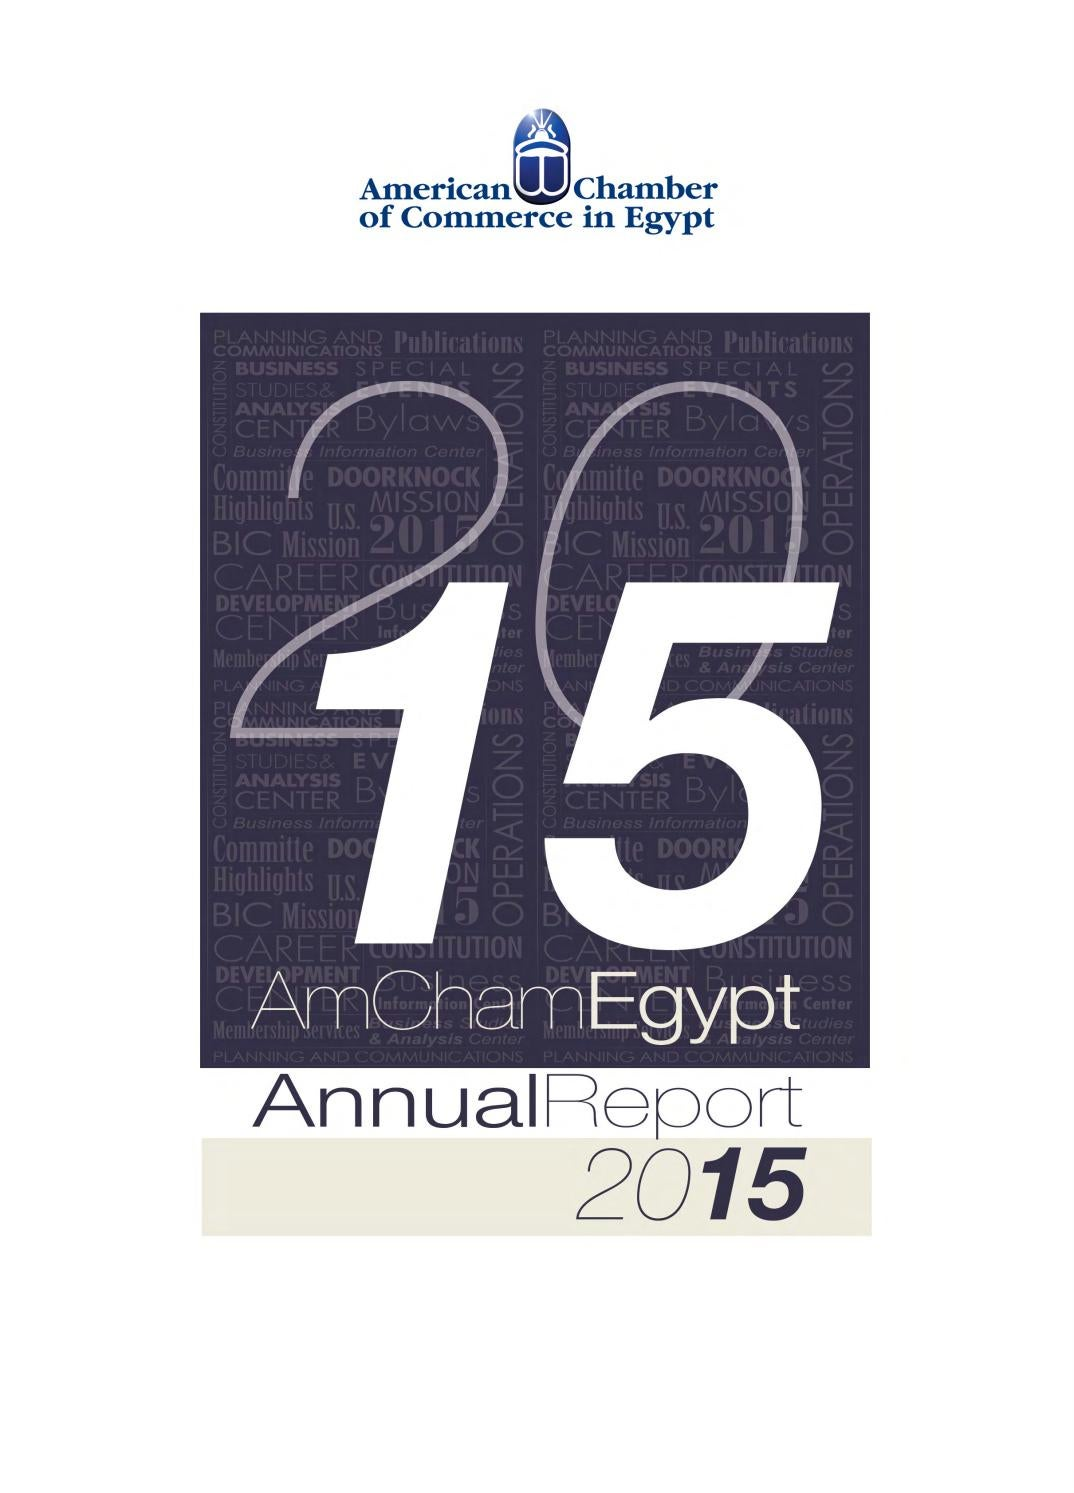 Amcham Annual Report 2015 By Business Monthly Issuu